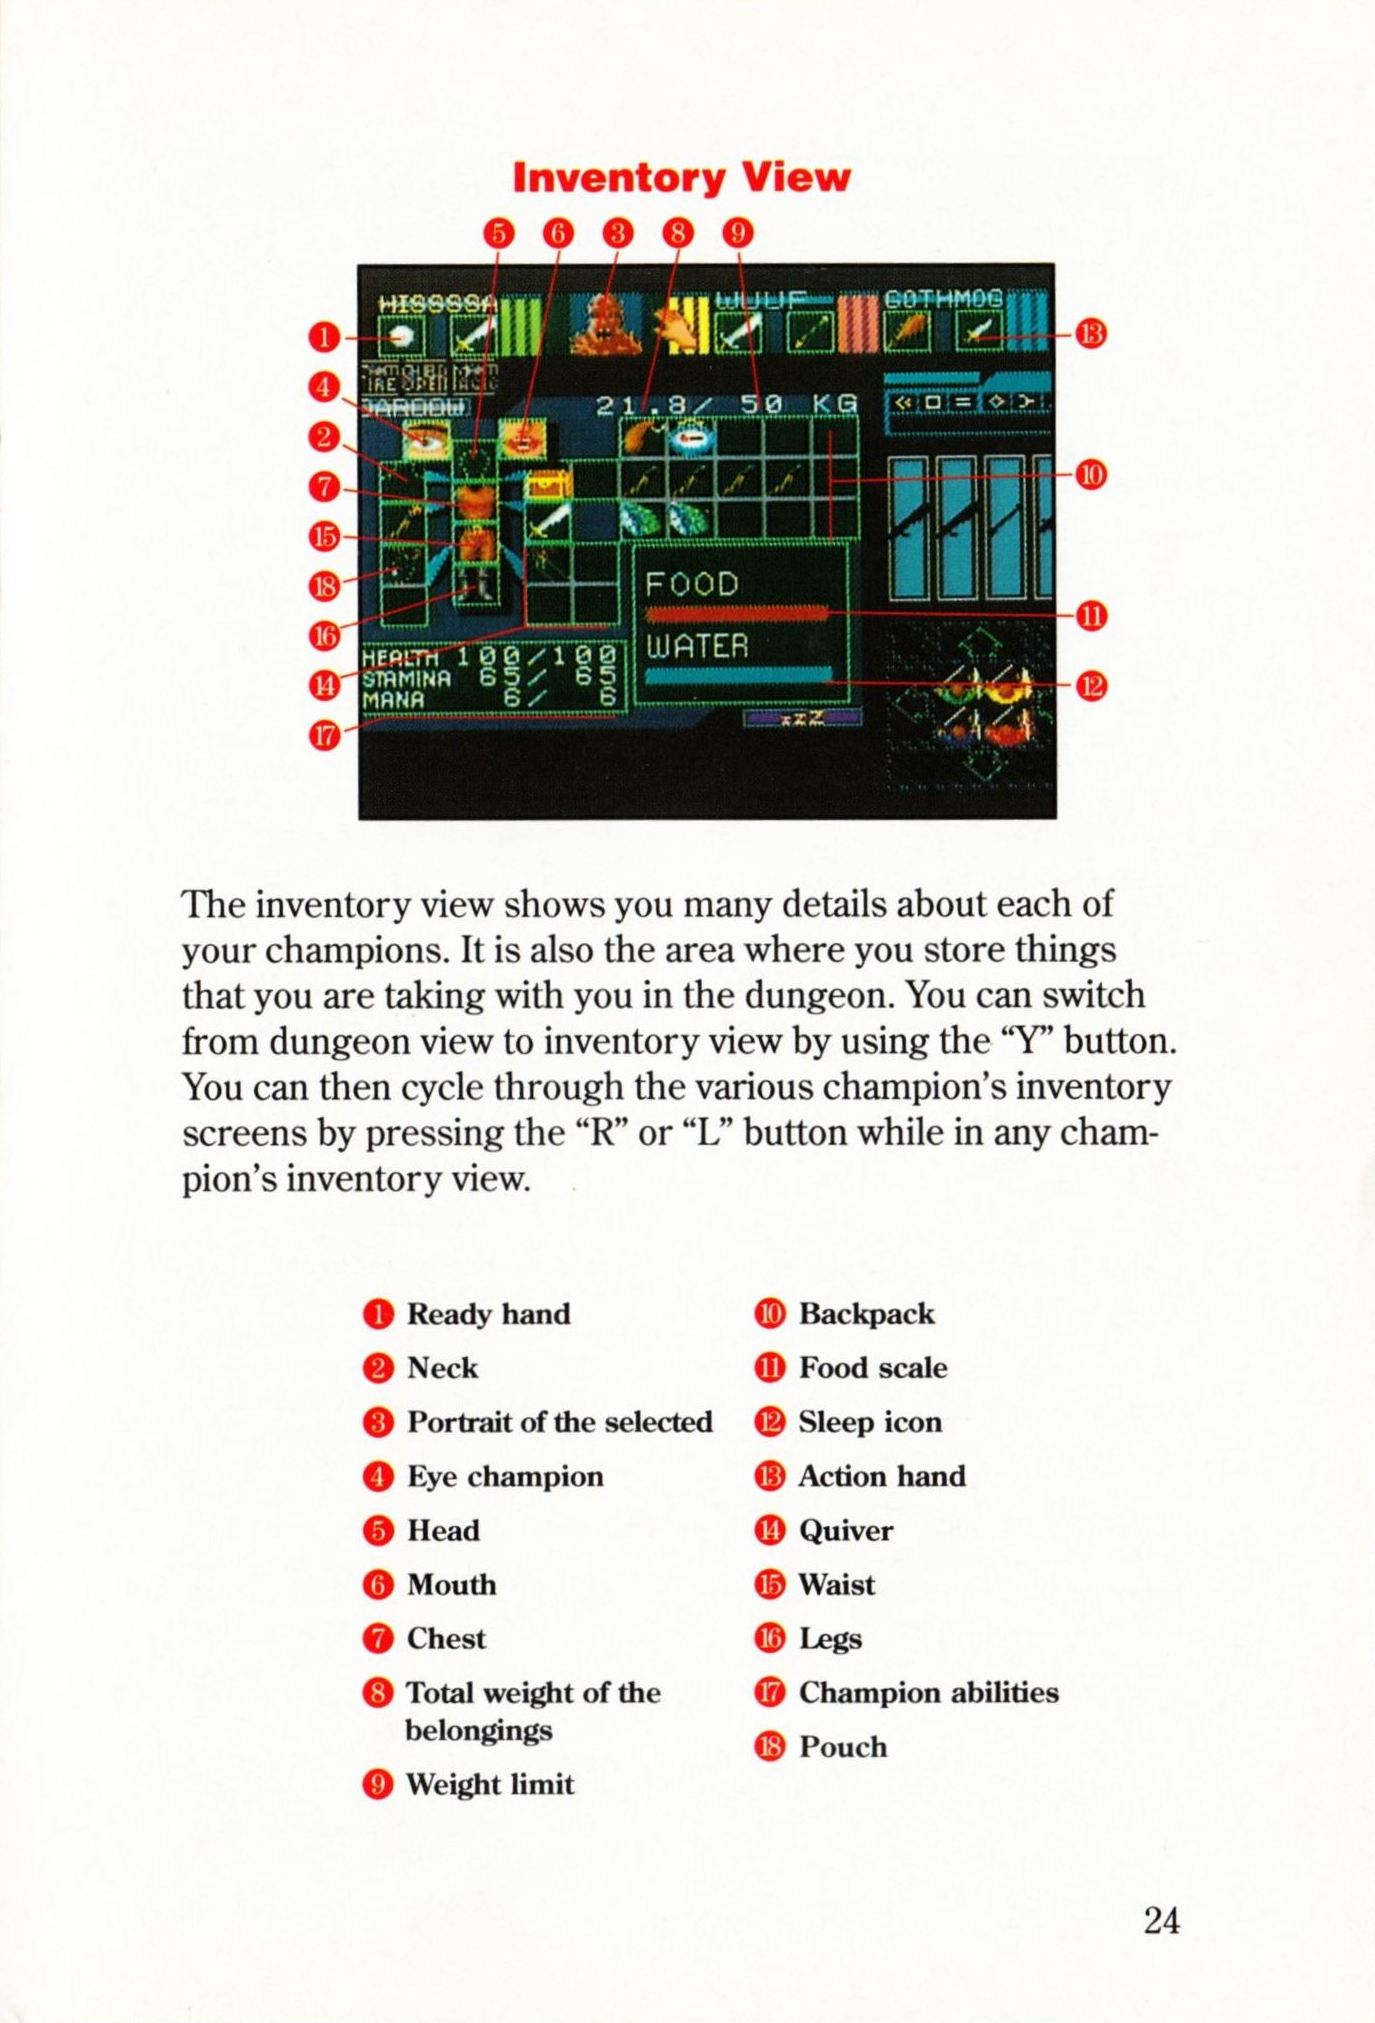 Game - Dungeon Master - US - Super NES - Manual - Page 027 - Scan